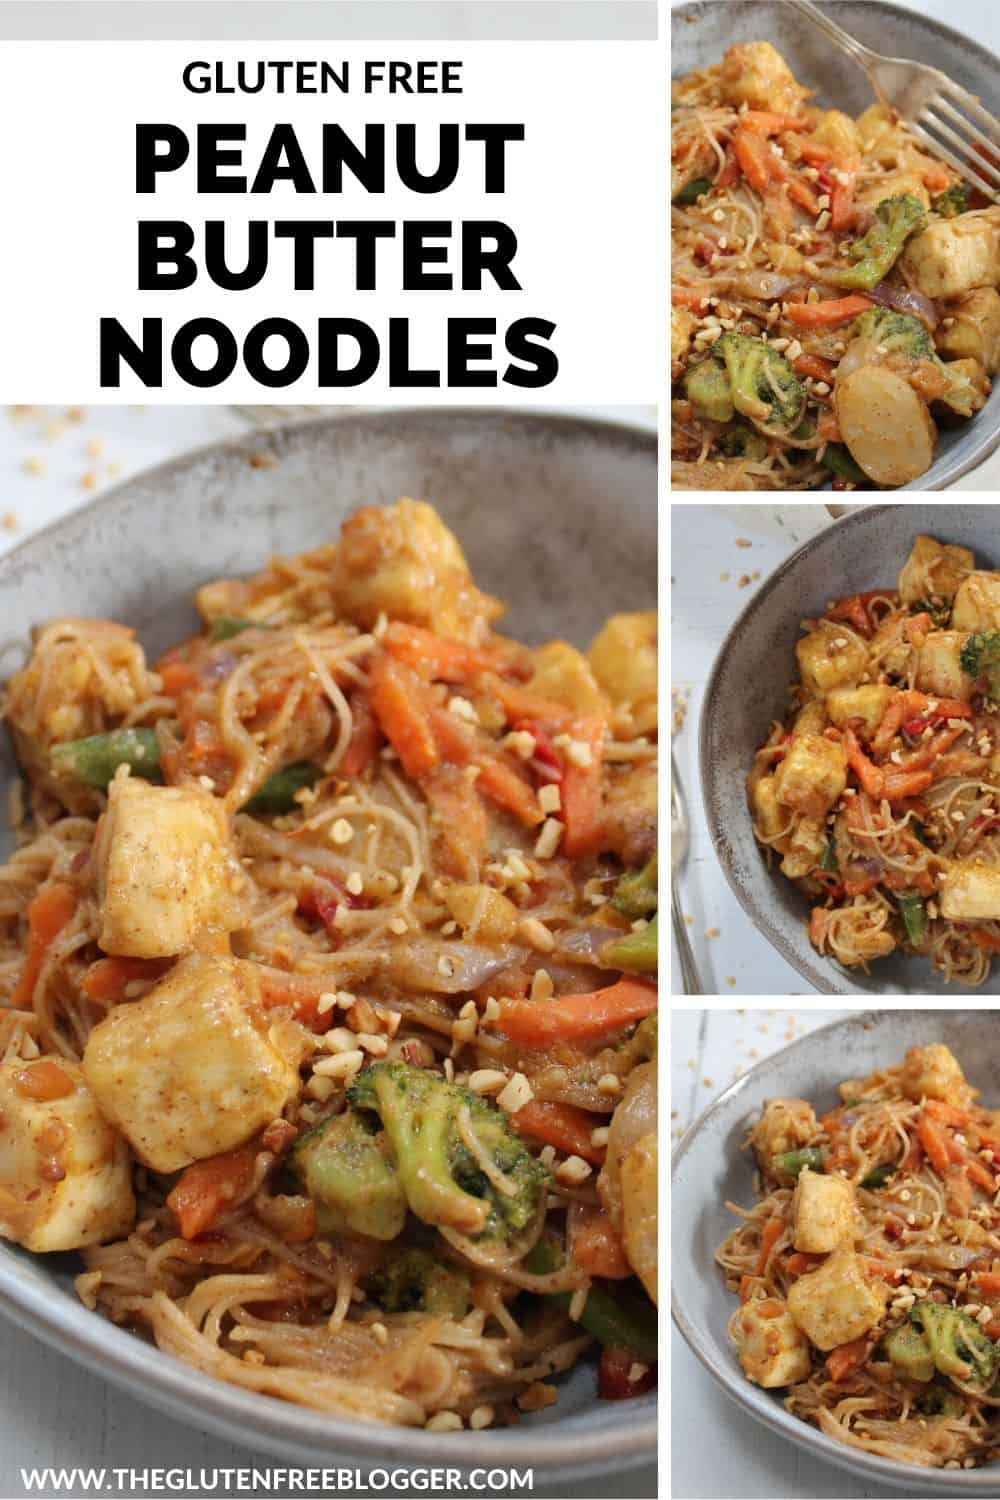 gluten free peanut butter noodles dinner ideas easy gluten free meals dairy free coeliac friendly (1)